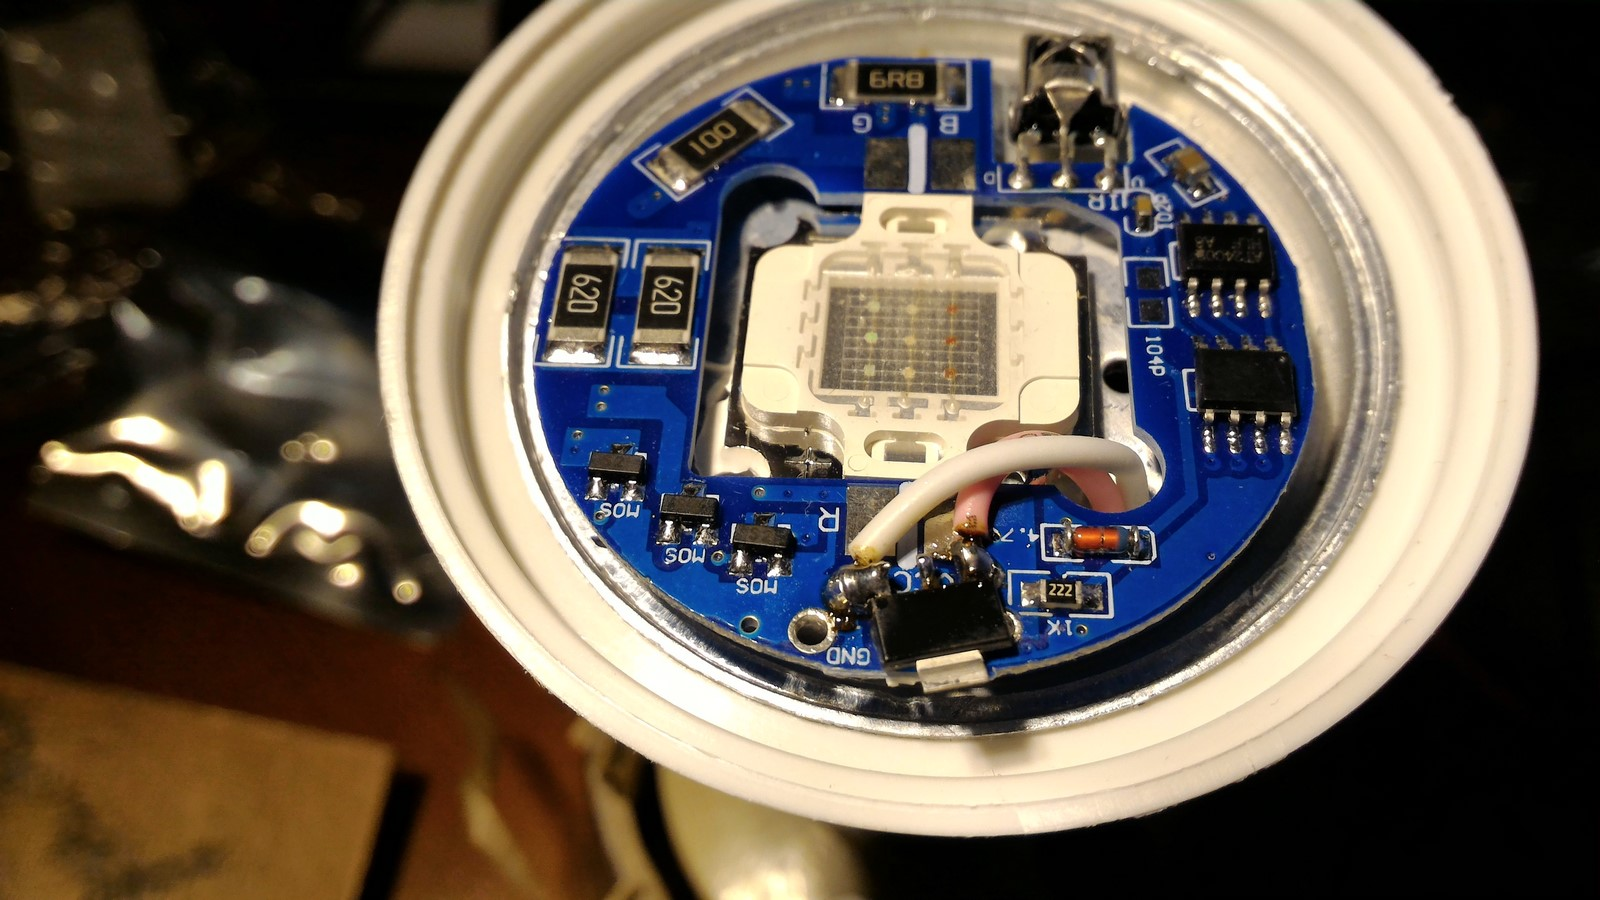 Hacking Rgb Ir Lamp With Esp8266 Failed Control Leds On Off Remote And Arduino P Marian Infrared Circuit Ams1117